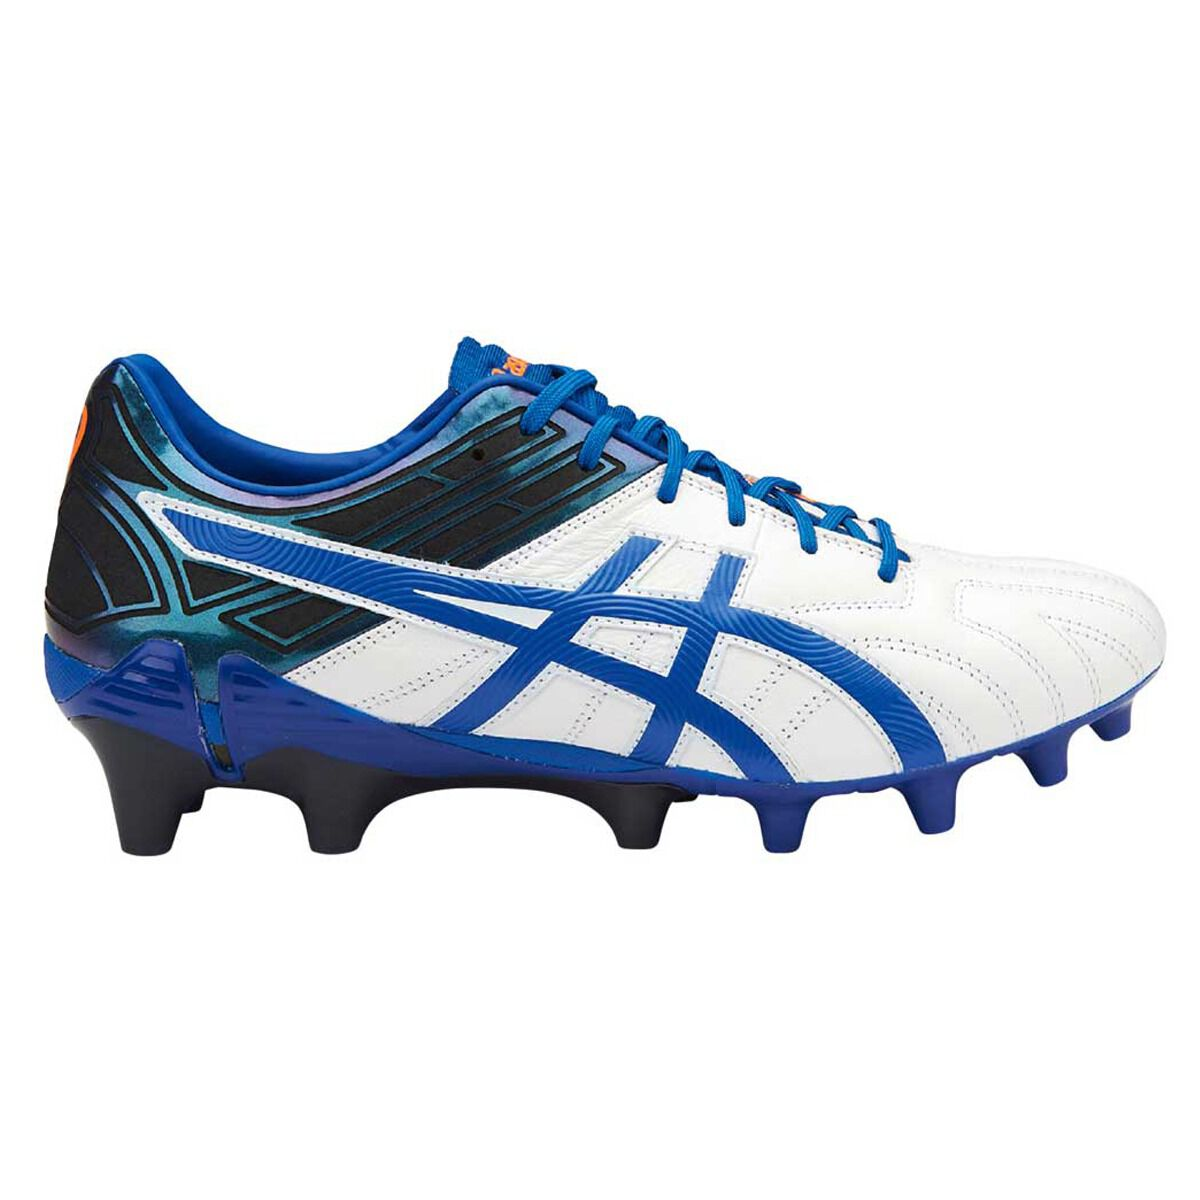 Asics GEL Lethal Tigreor 10 IT Mens Football Boots White Imperial US 9.5 Adult